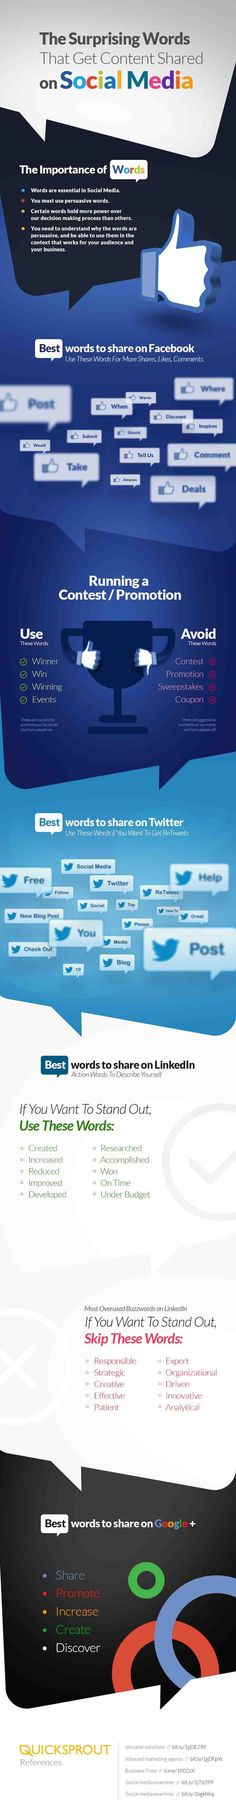 What Are Words That Drive Social Media Shares? #Infographic